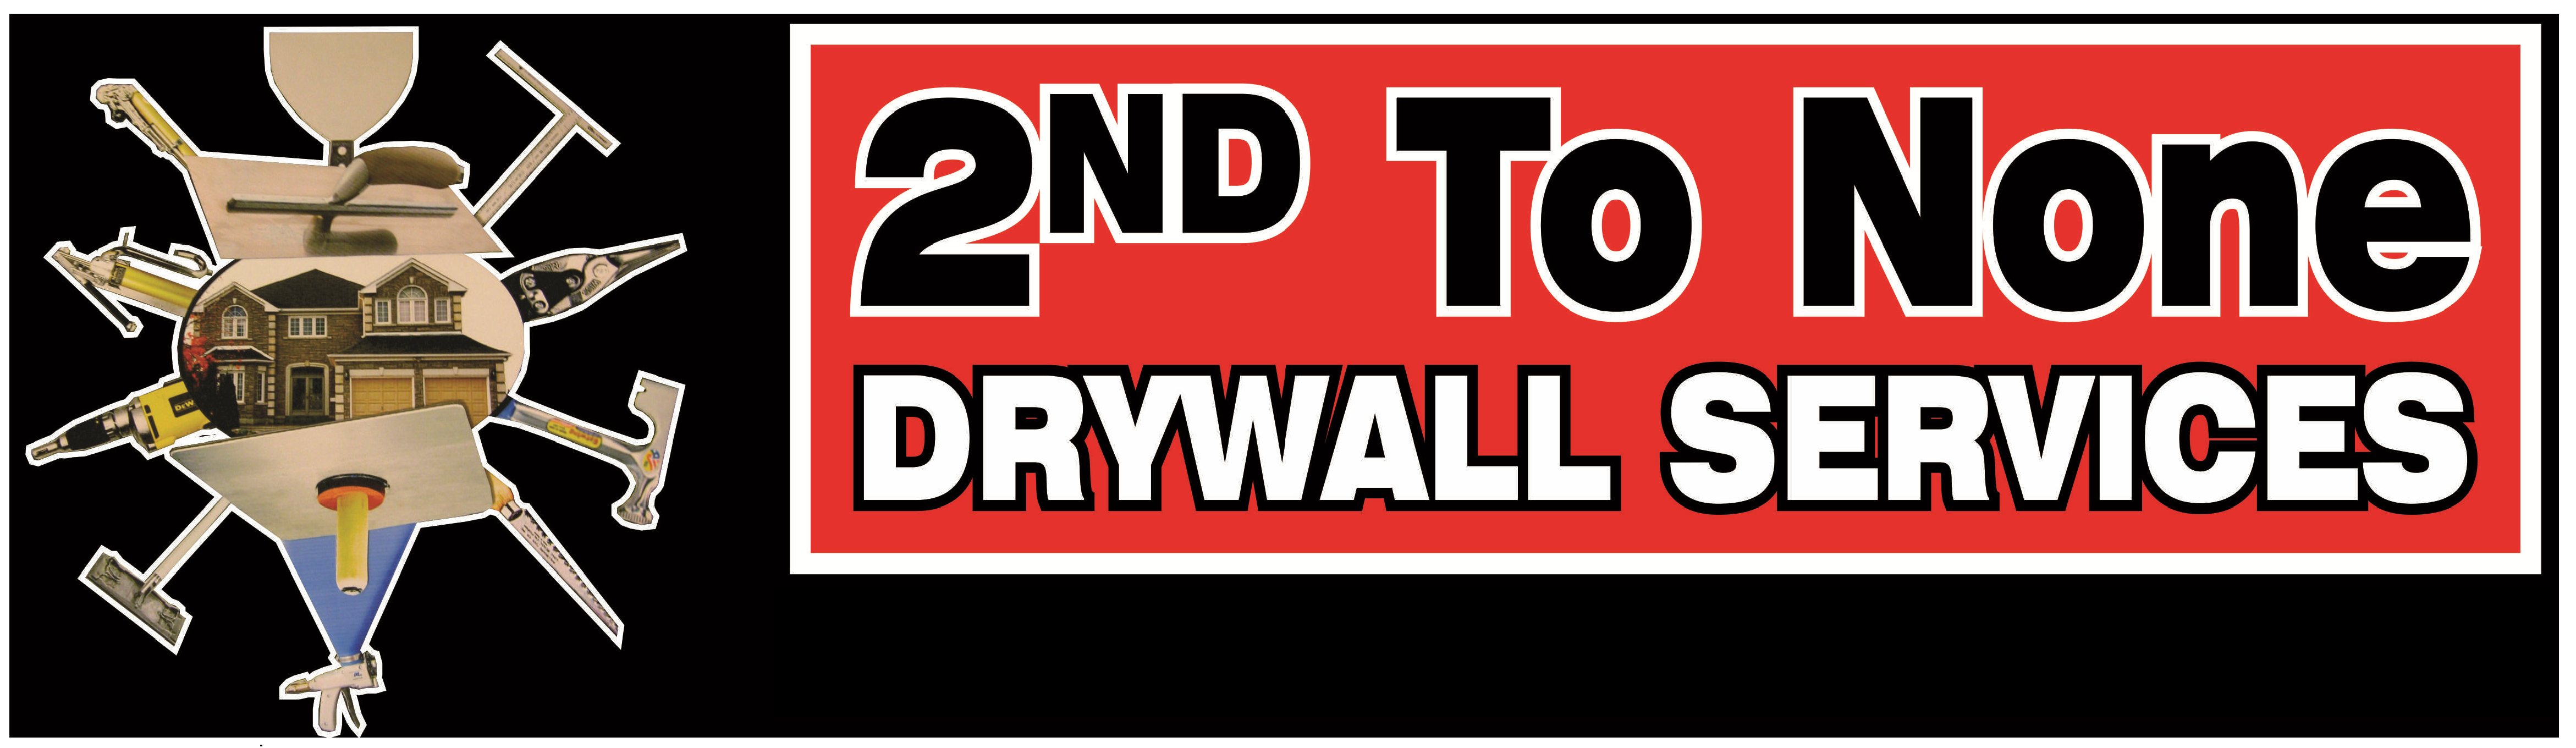 2nd To None Drywall Services